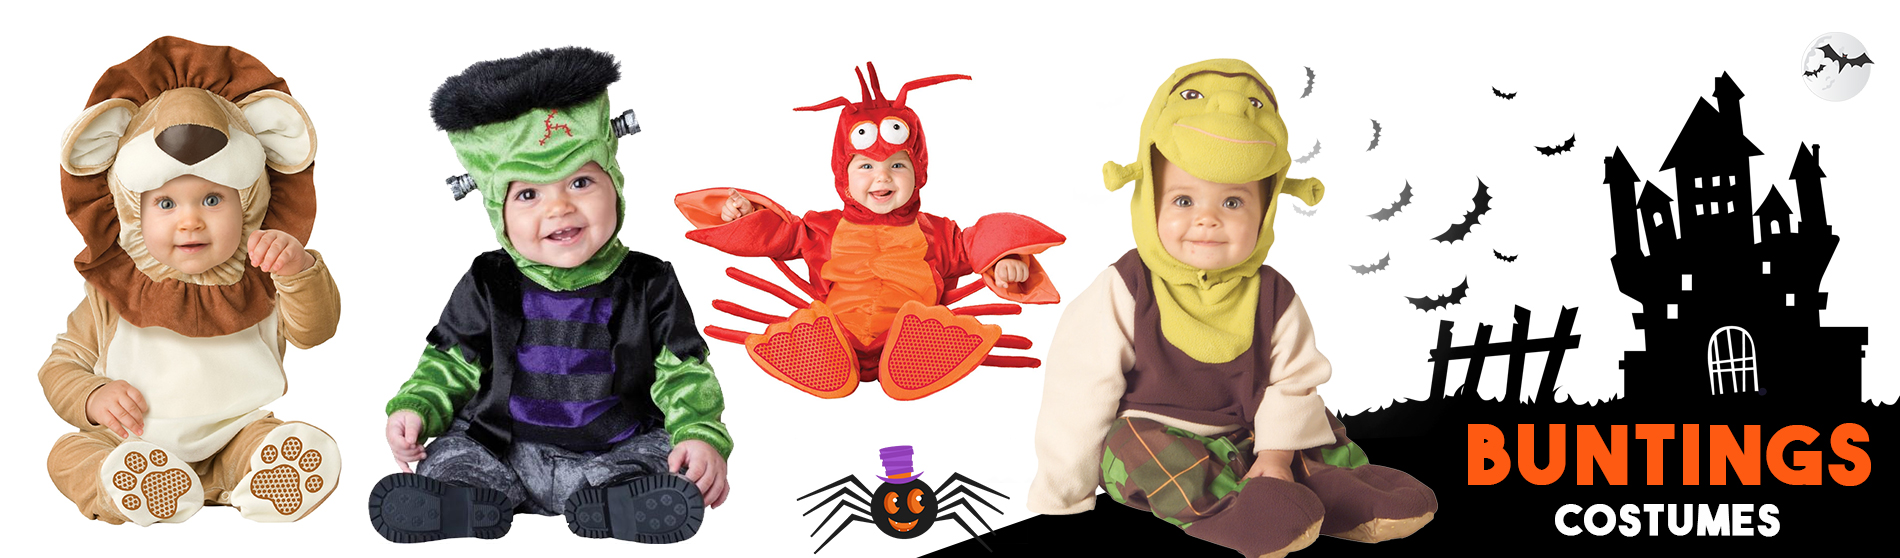 Glendale Costumes Buntings Design For Toddlers